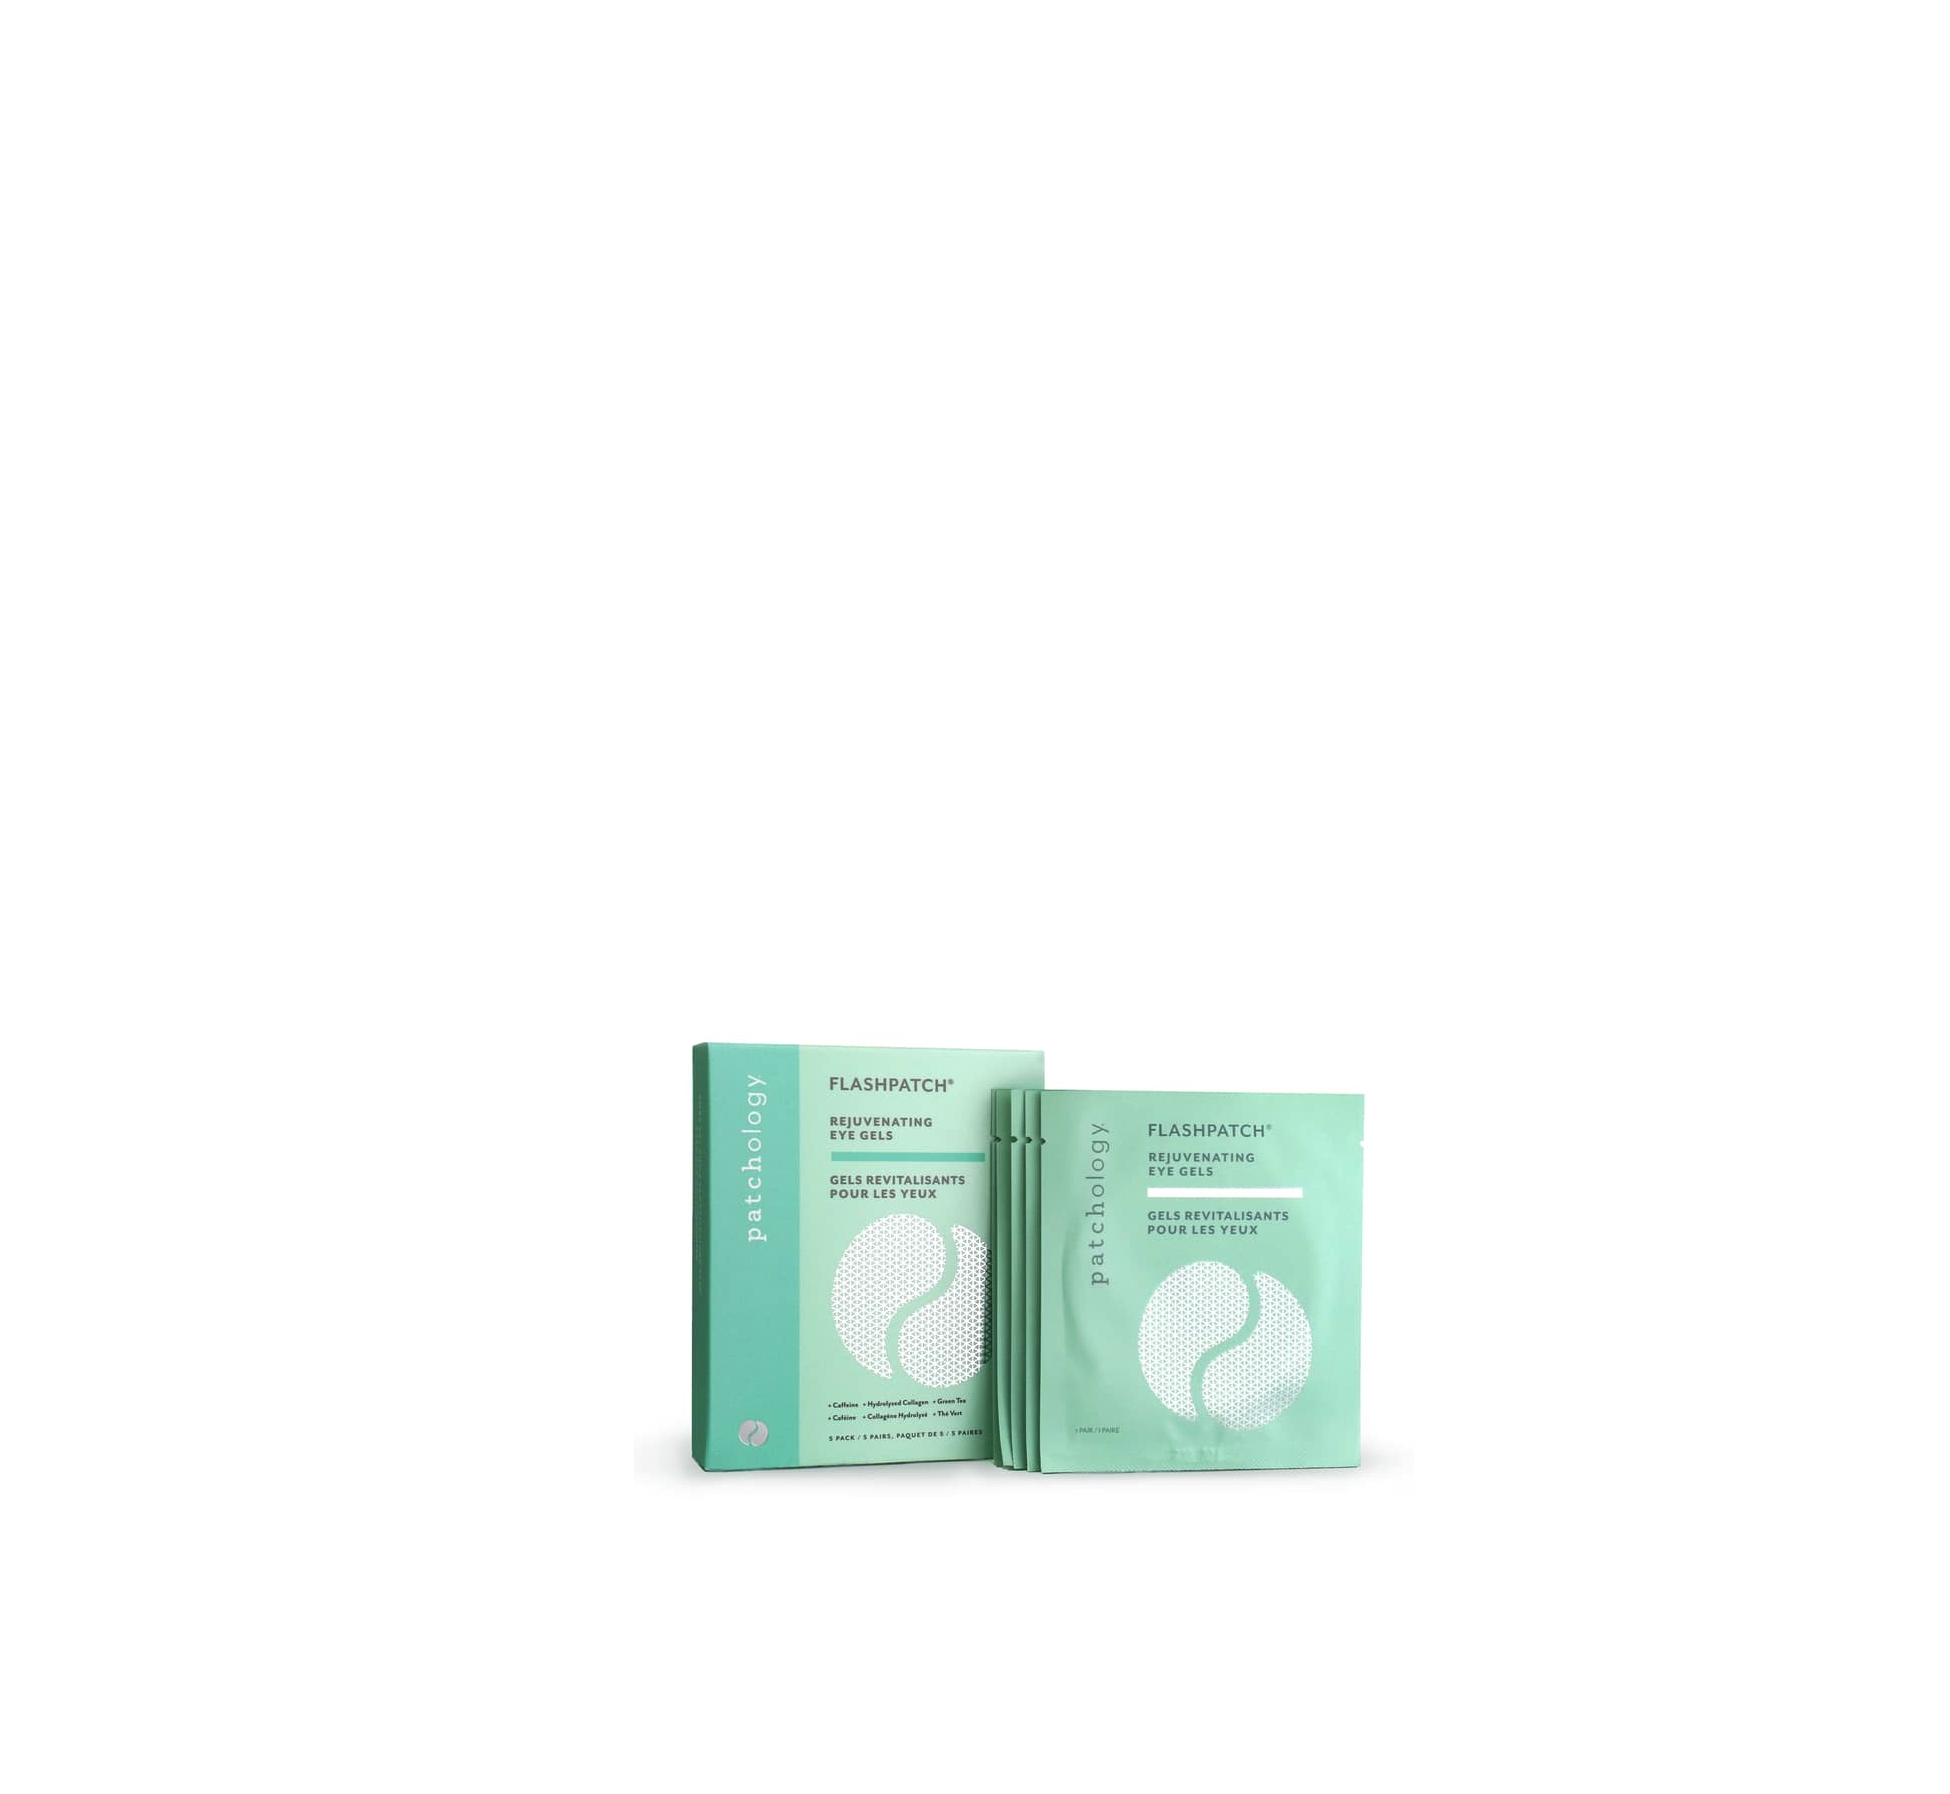 FlashPatch™ Rejuvenating Eye Gels